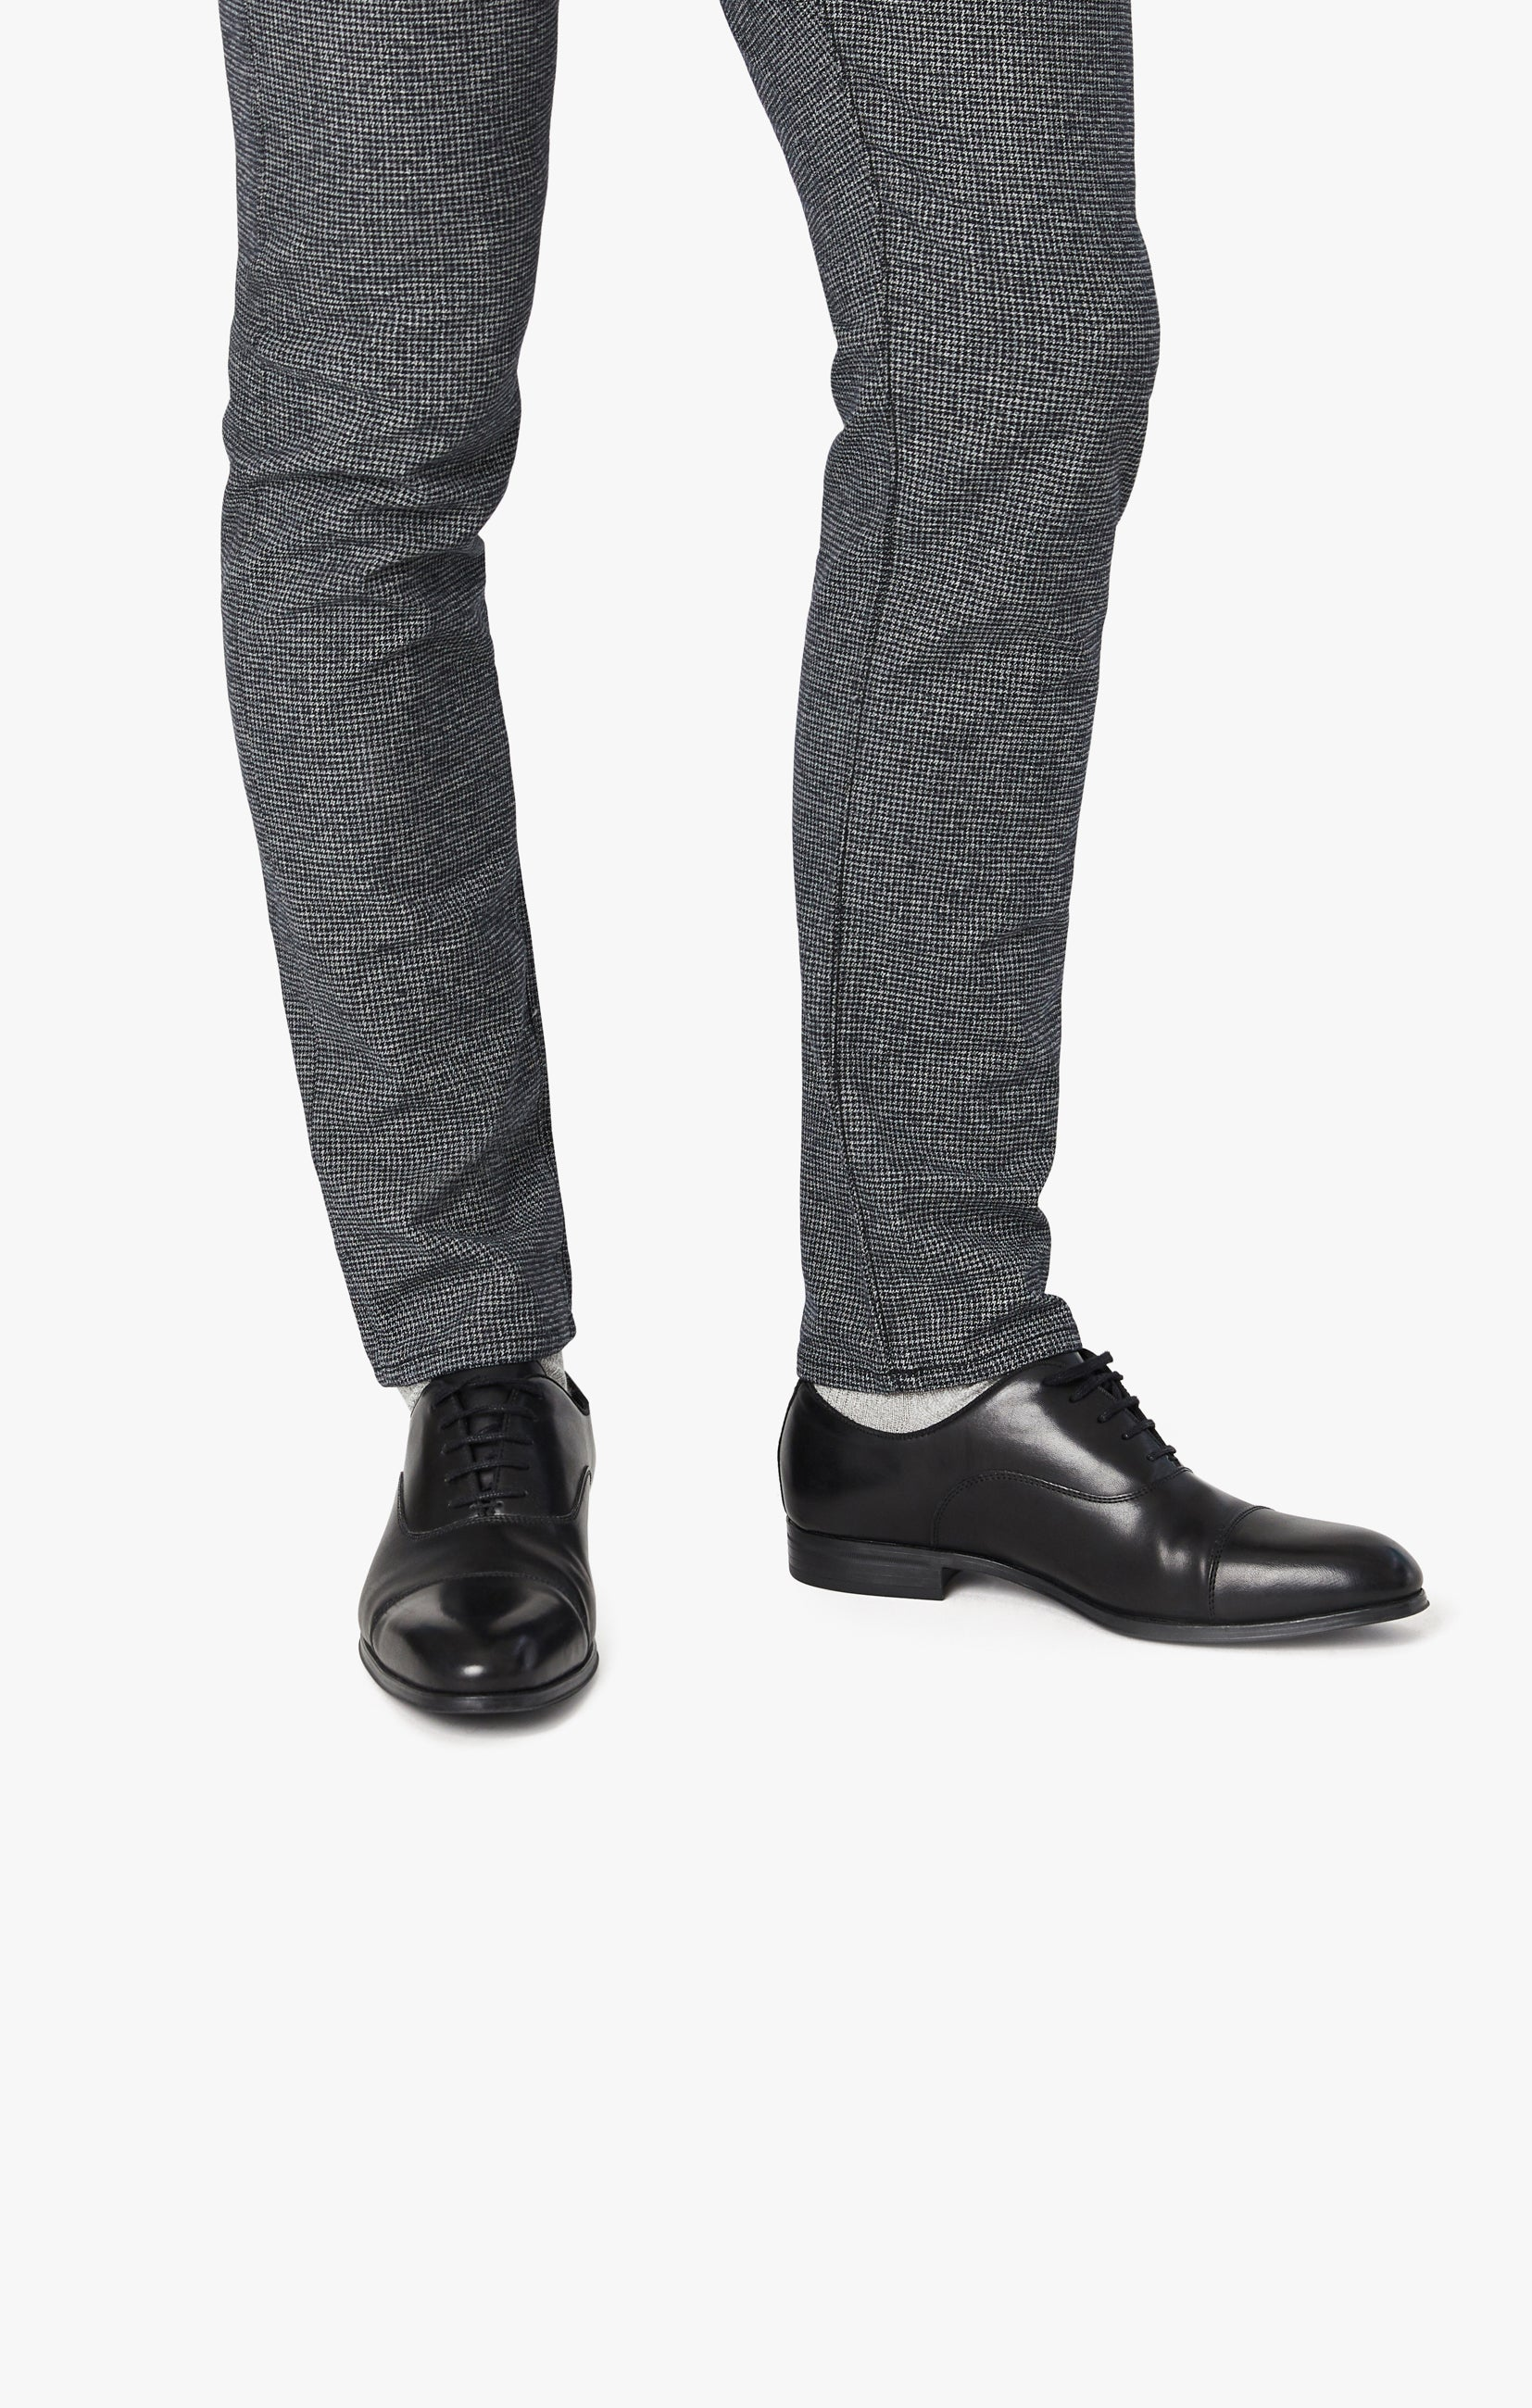 Courage Straight Leg Pants In Grey Houndstooth Image 3